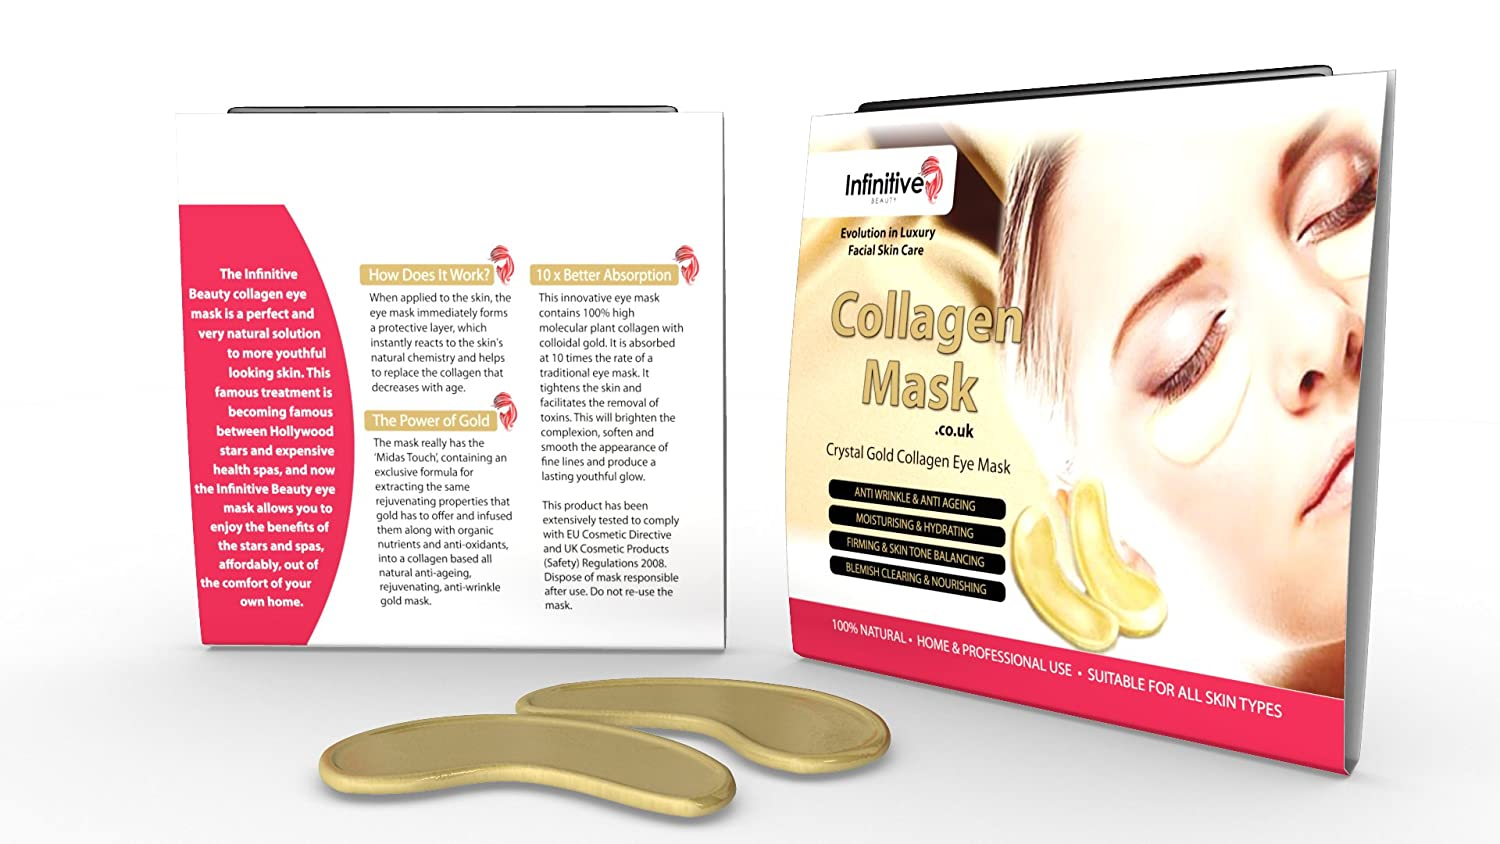 10 x Pack New Crystal 24K Gold Powder Gel Collagen Eye Mask Masks Sheet Patch, Anti Ageing Aging, Remove Bags, Dark Circles & Puffiness, Skincare, Anti Wrinkle, Moisturising, Moisture, Hydrating, Uplifting, Whitening, Remove Blemishes & Blackheads